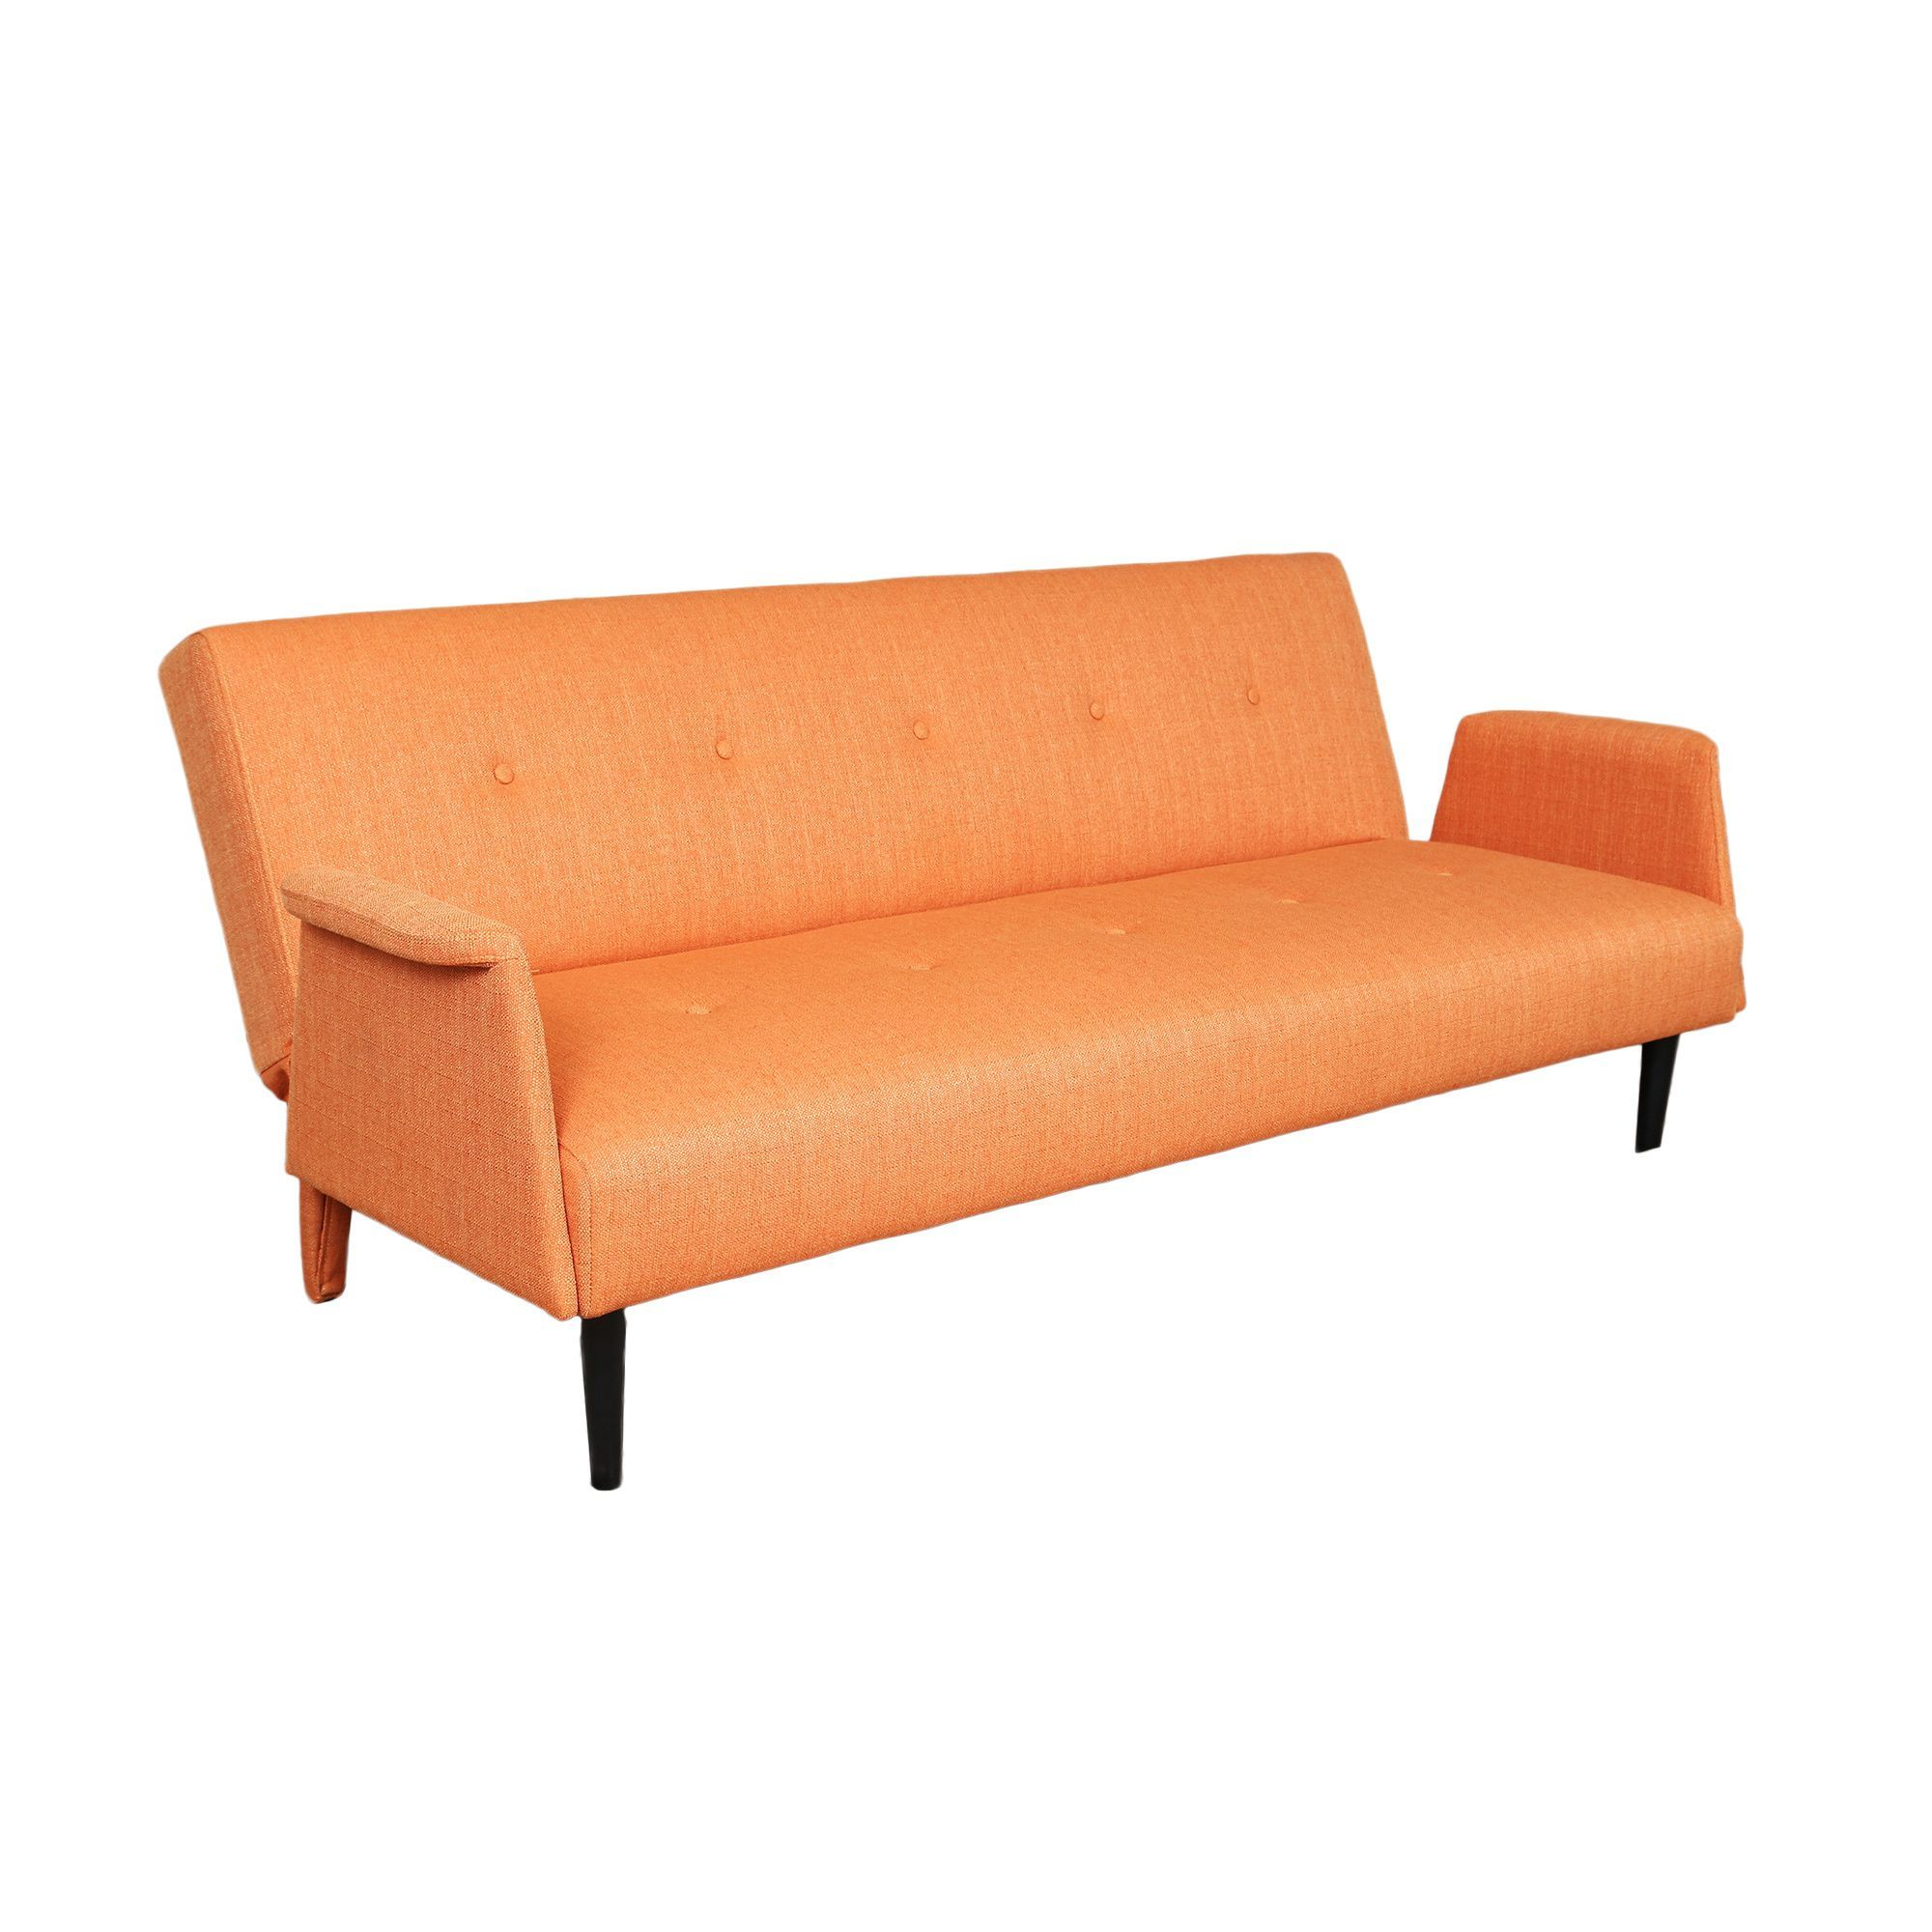 Orange And Black Sofa Bed Argos 2 Seater Recliner Sitswell Naomi Futon Sleeper Porter International Designs Size Full